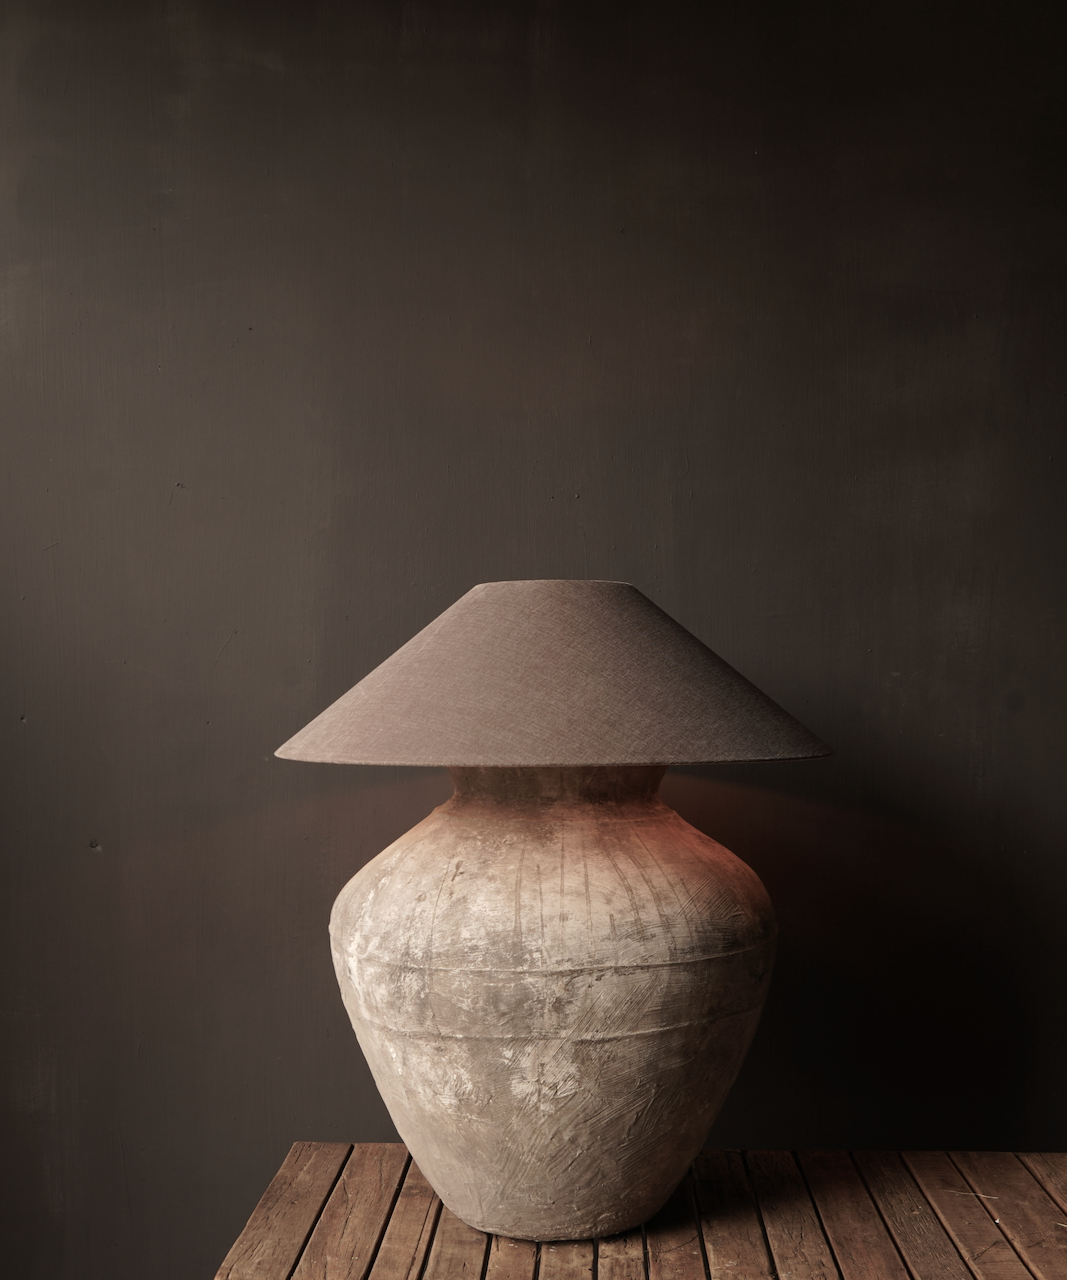 Jug lamp made from an old authentic terracotta Indian water jug - Copy-1